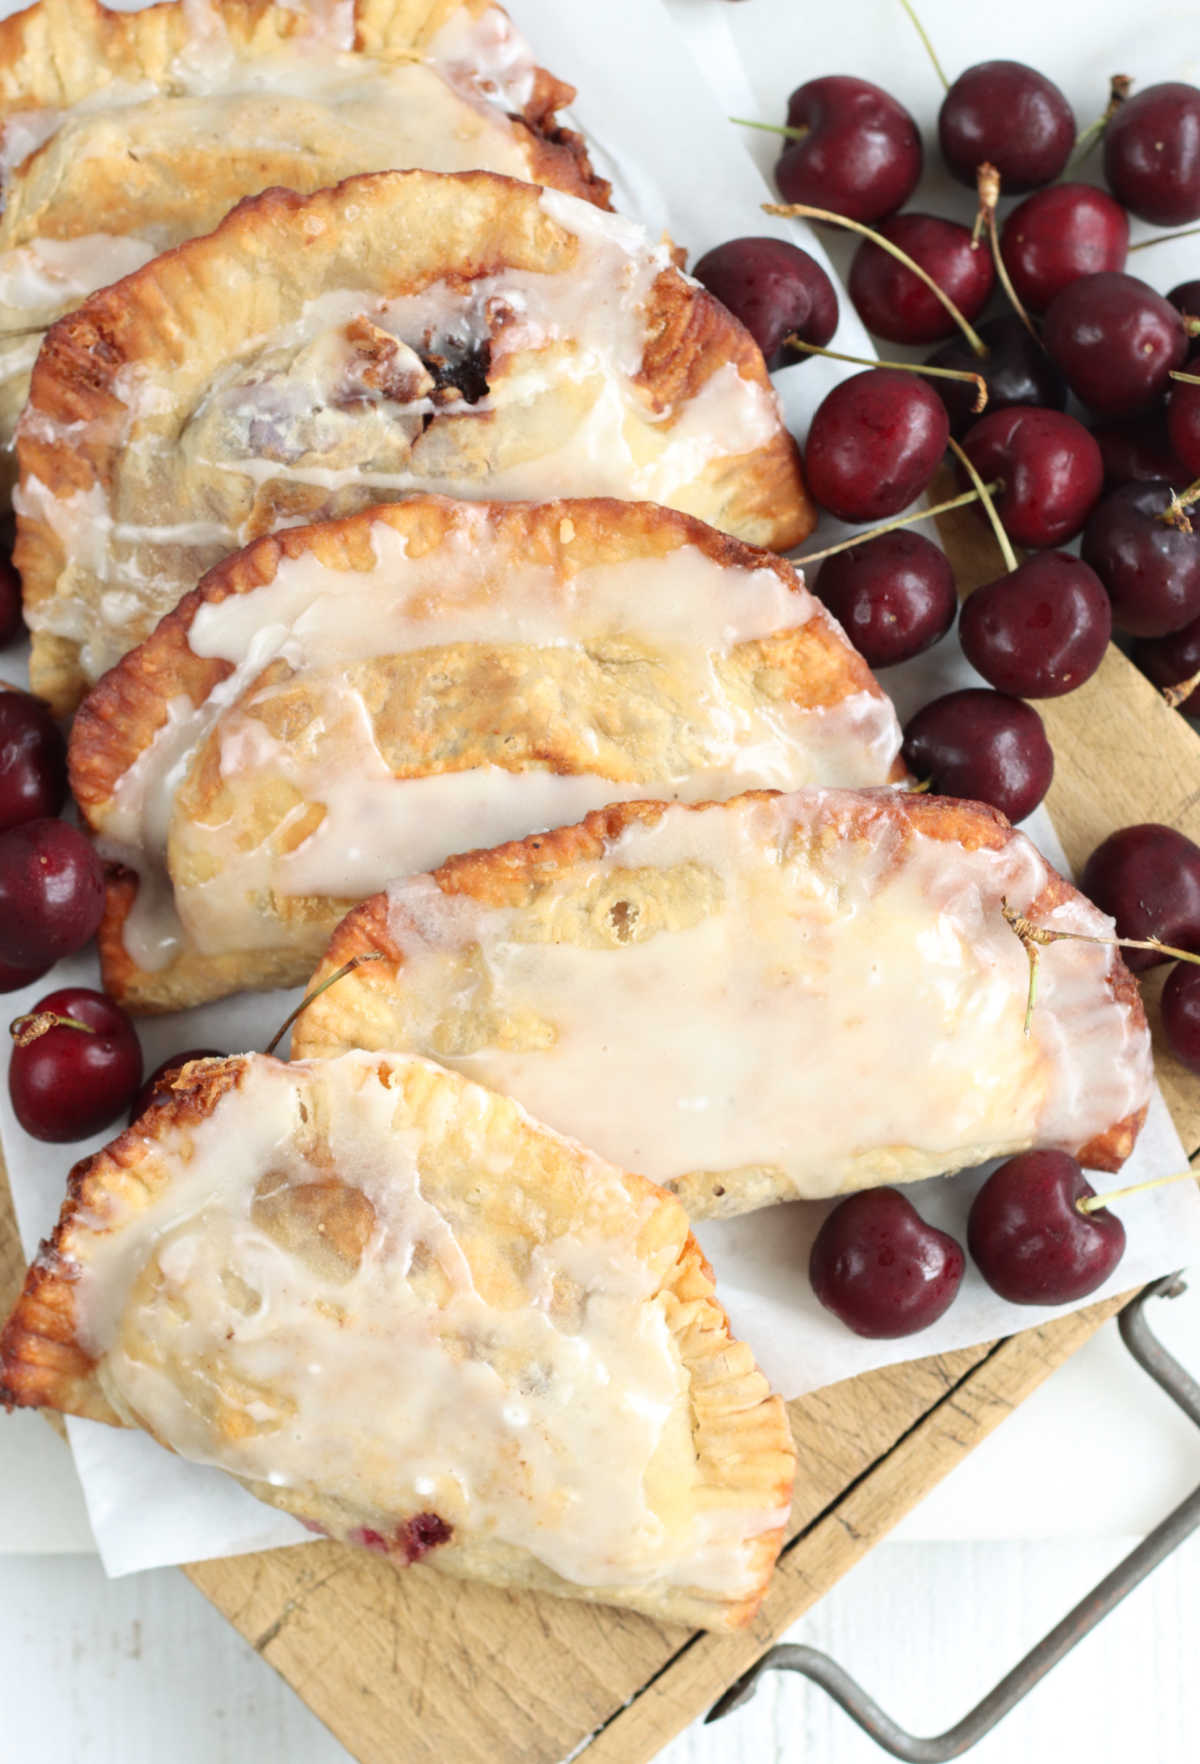 Fried hand pies on wooden cutting board with fresh cherries around.